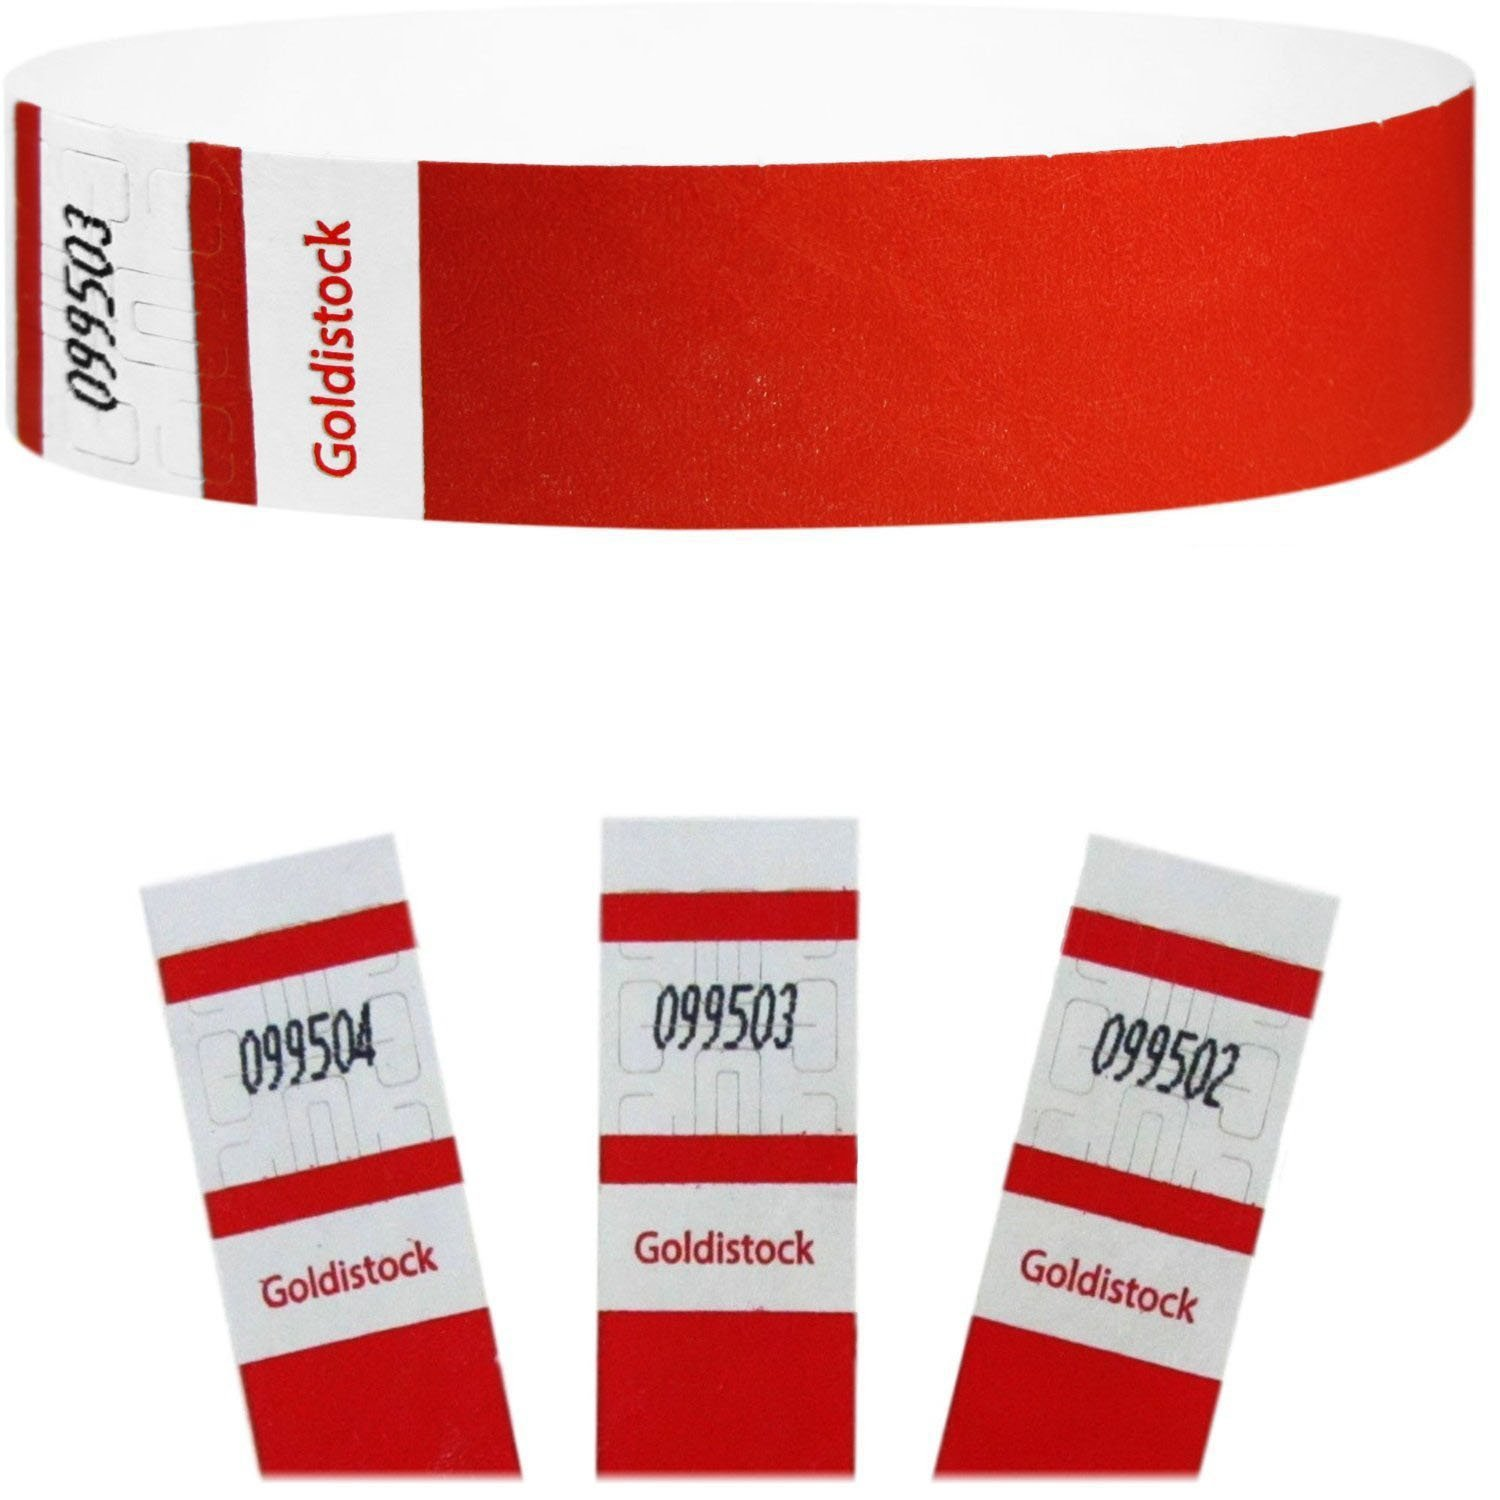 "Goldistock Select Series - 3/4"" Tyvek Wristbands Neon Red 500 Count - Event Identification Bands (Paper - Like Texture)"